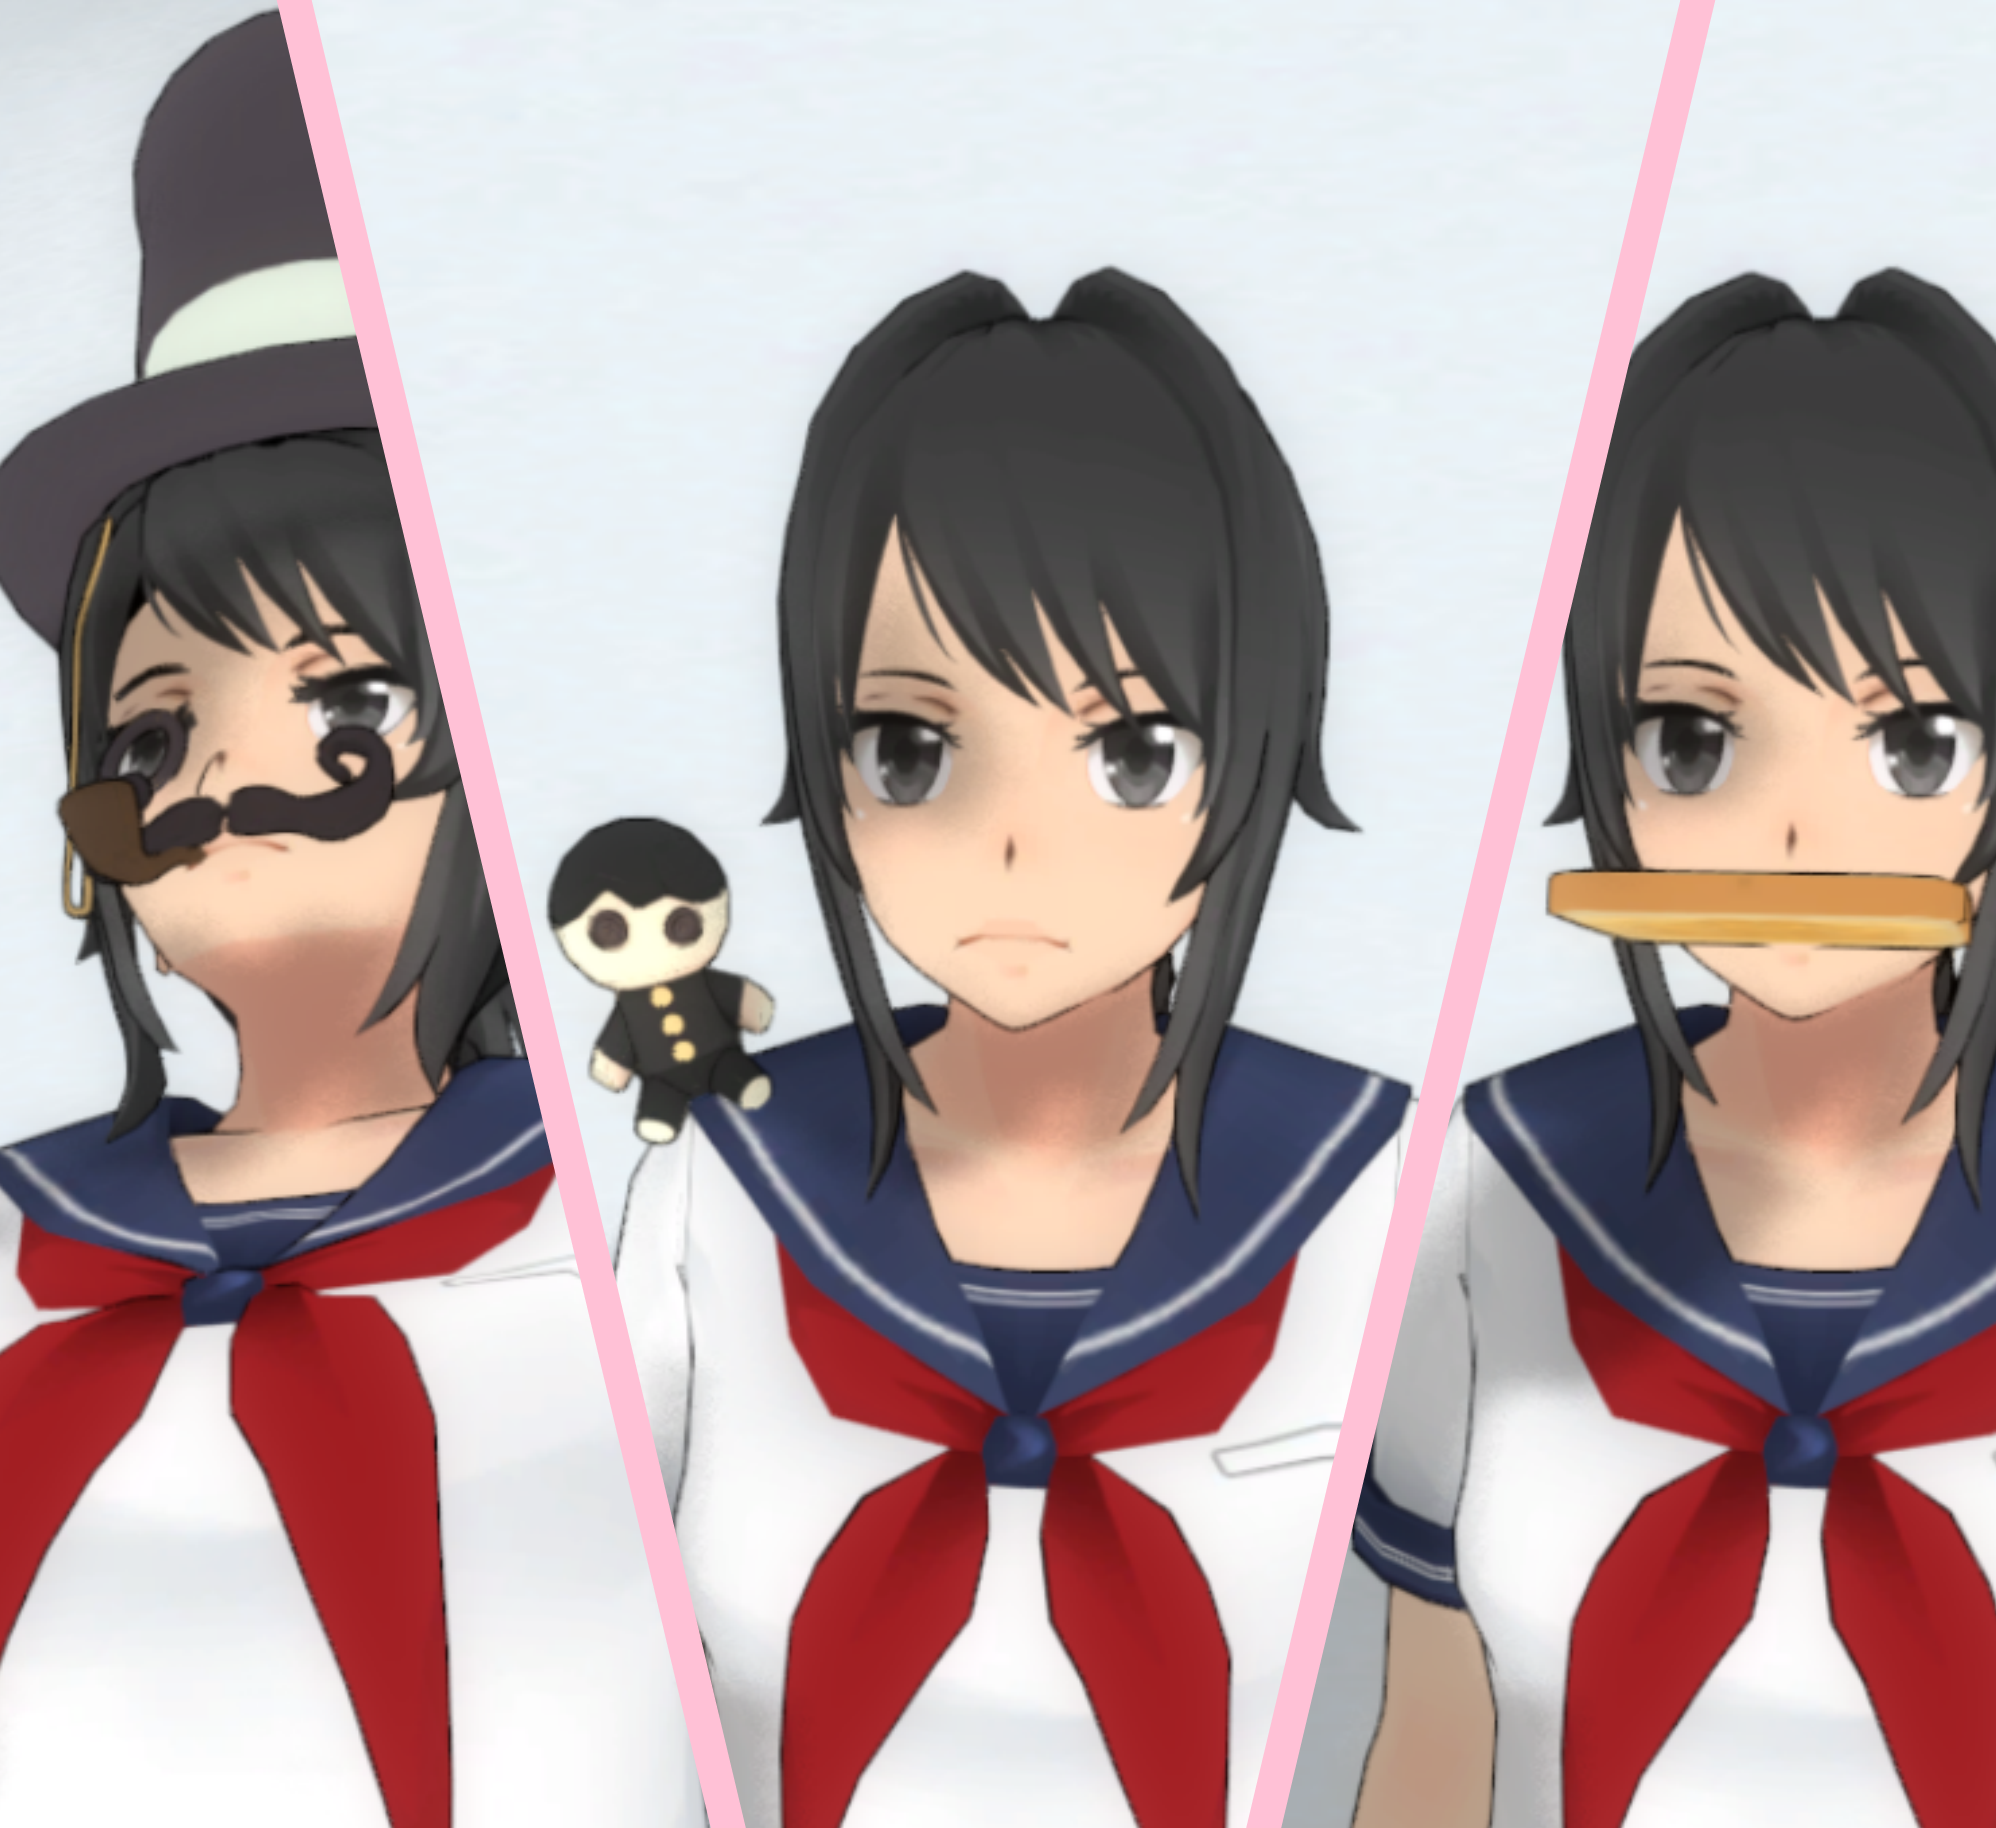 Customization | Yandere Simulator Wiki | FANDOM powered by Wikia